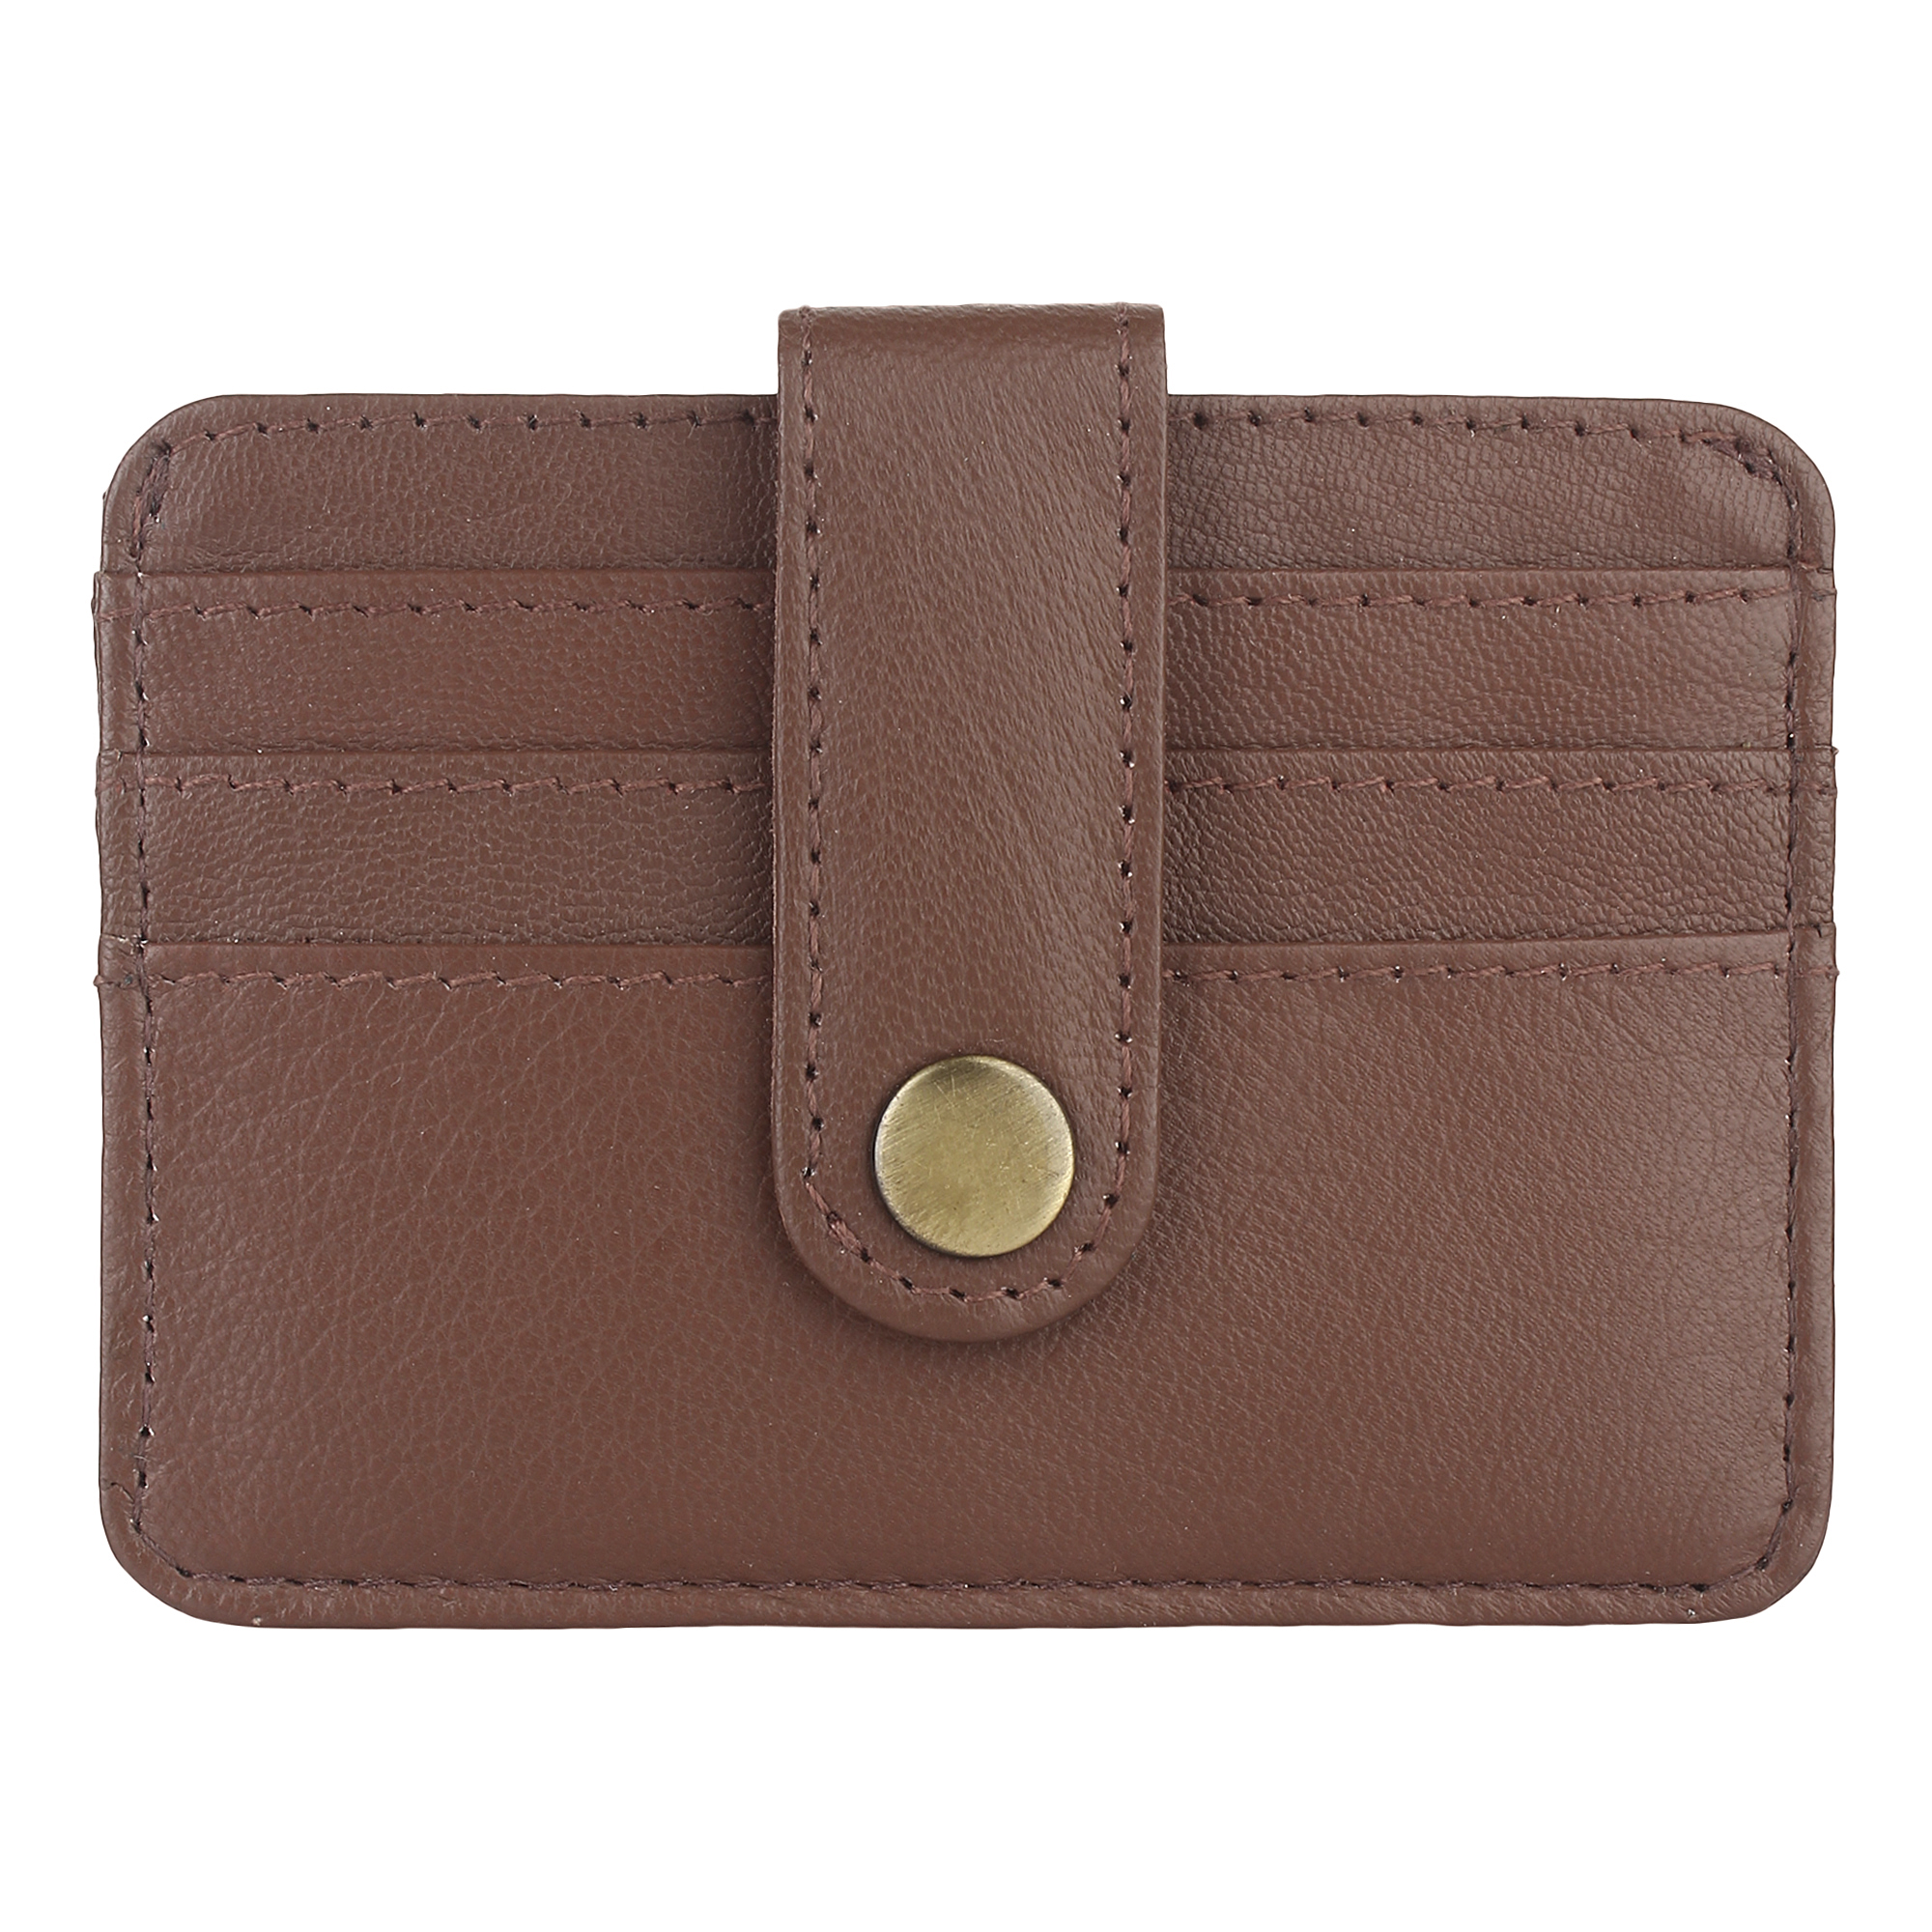 Leather card holder wallet Manufacturers in United-arab-emirates, card holder wallet Suppliers in United-arab-emirates, card holder wallet Wholesalers in United-arab-emirates, card holder wallet Traders in United-arab-emirates